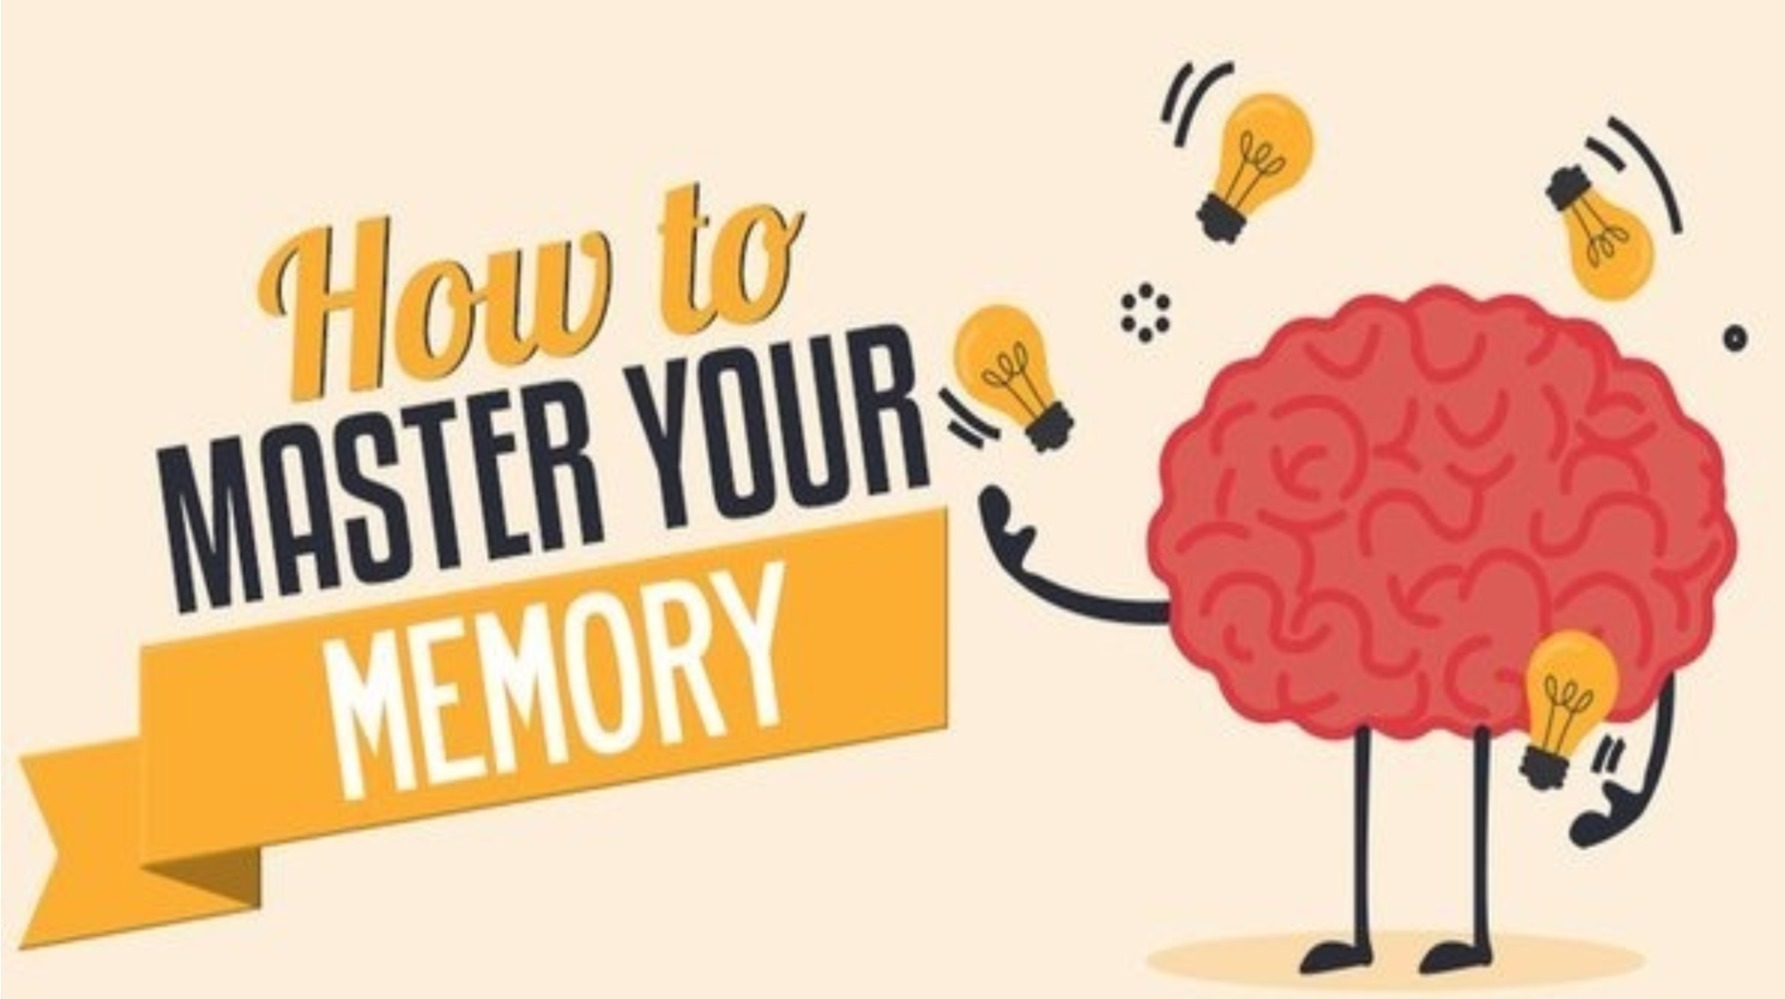 Master your memory with this new book